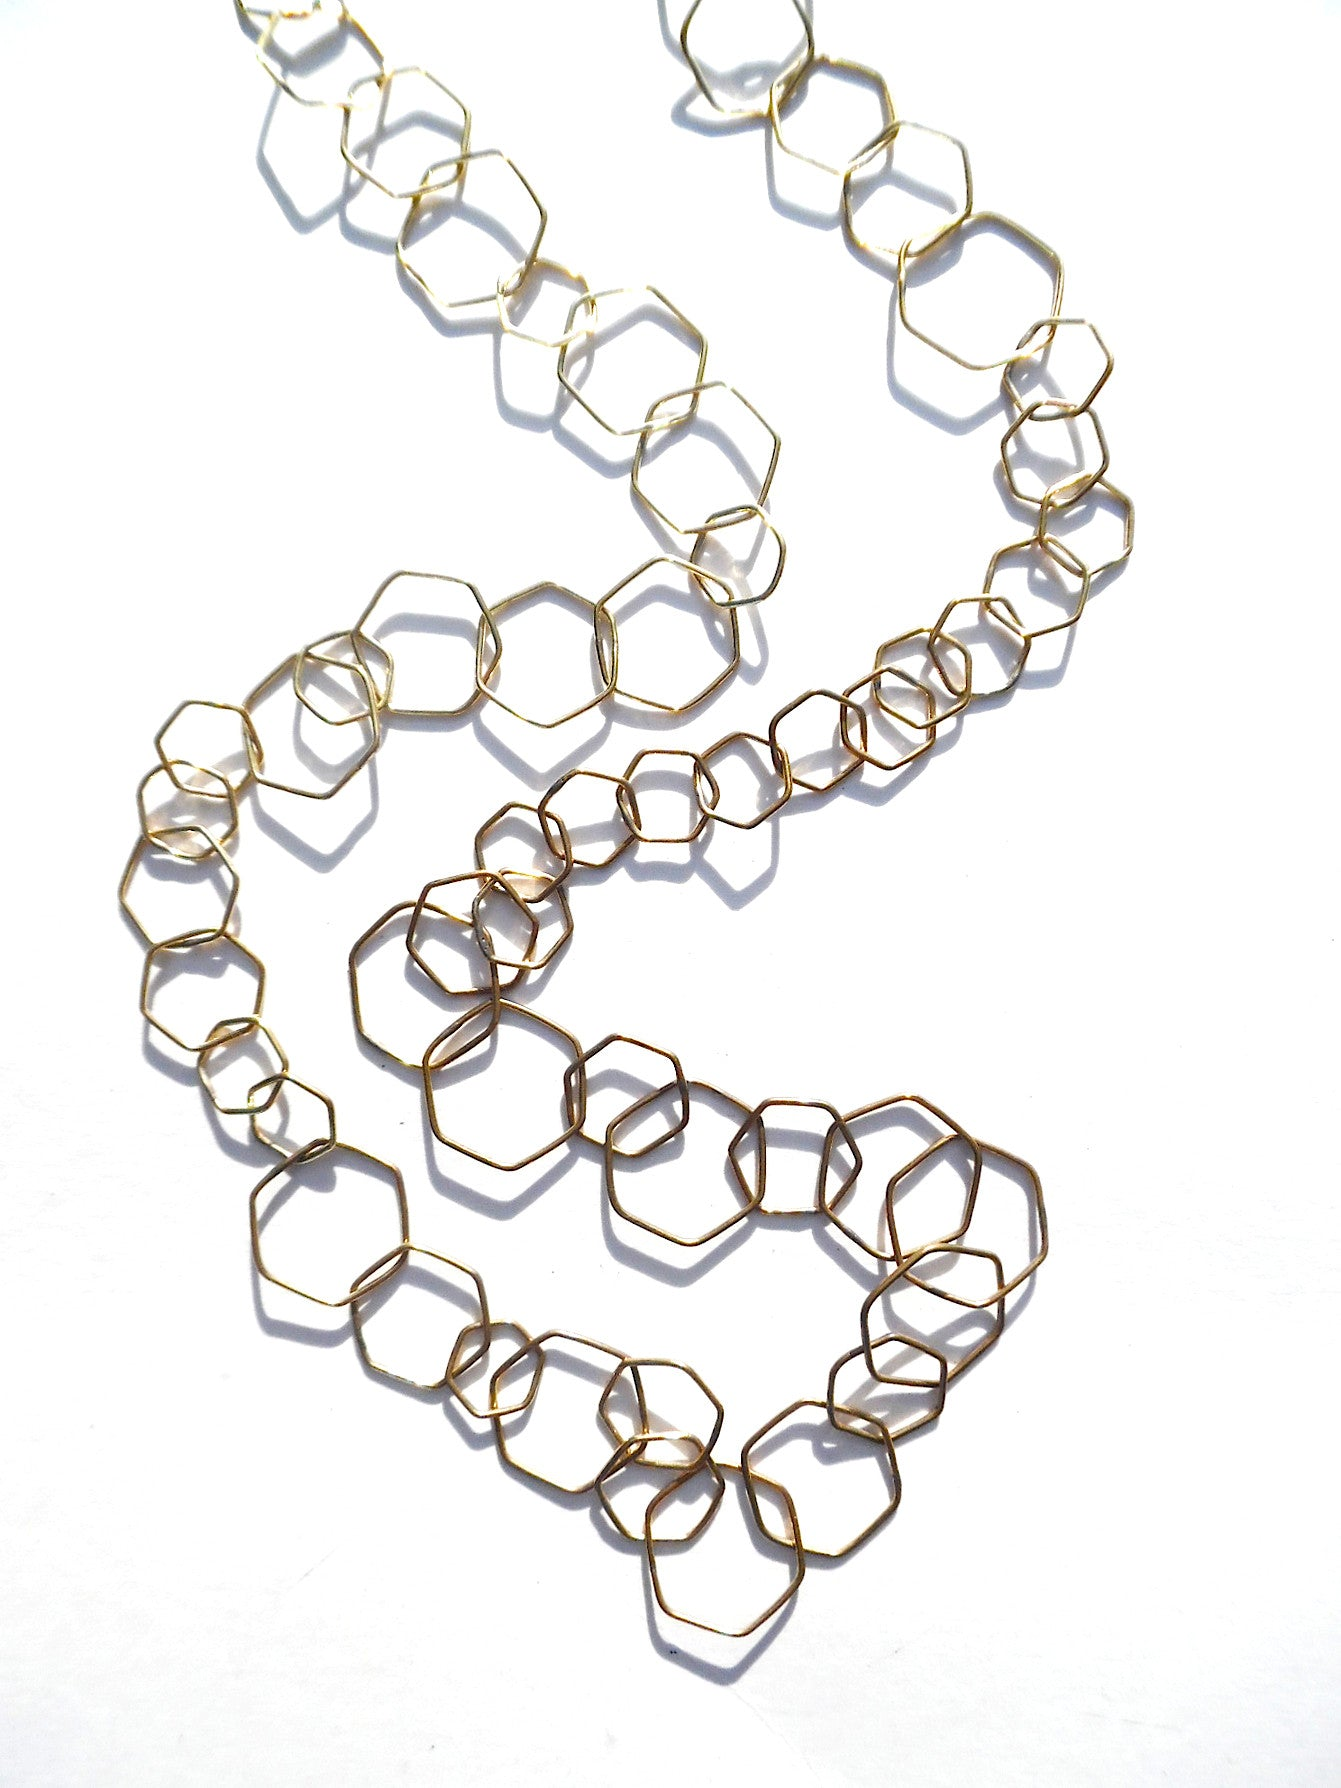 NECKLACE DELICATE HEXAGON LINKS GOLD ON BRASS